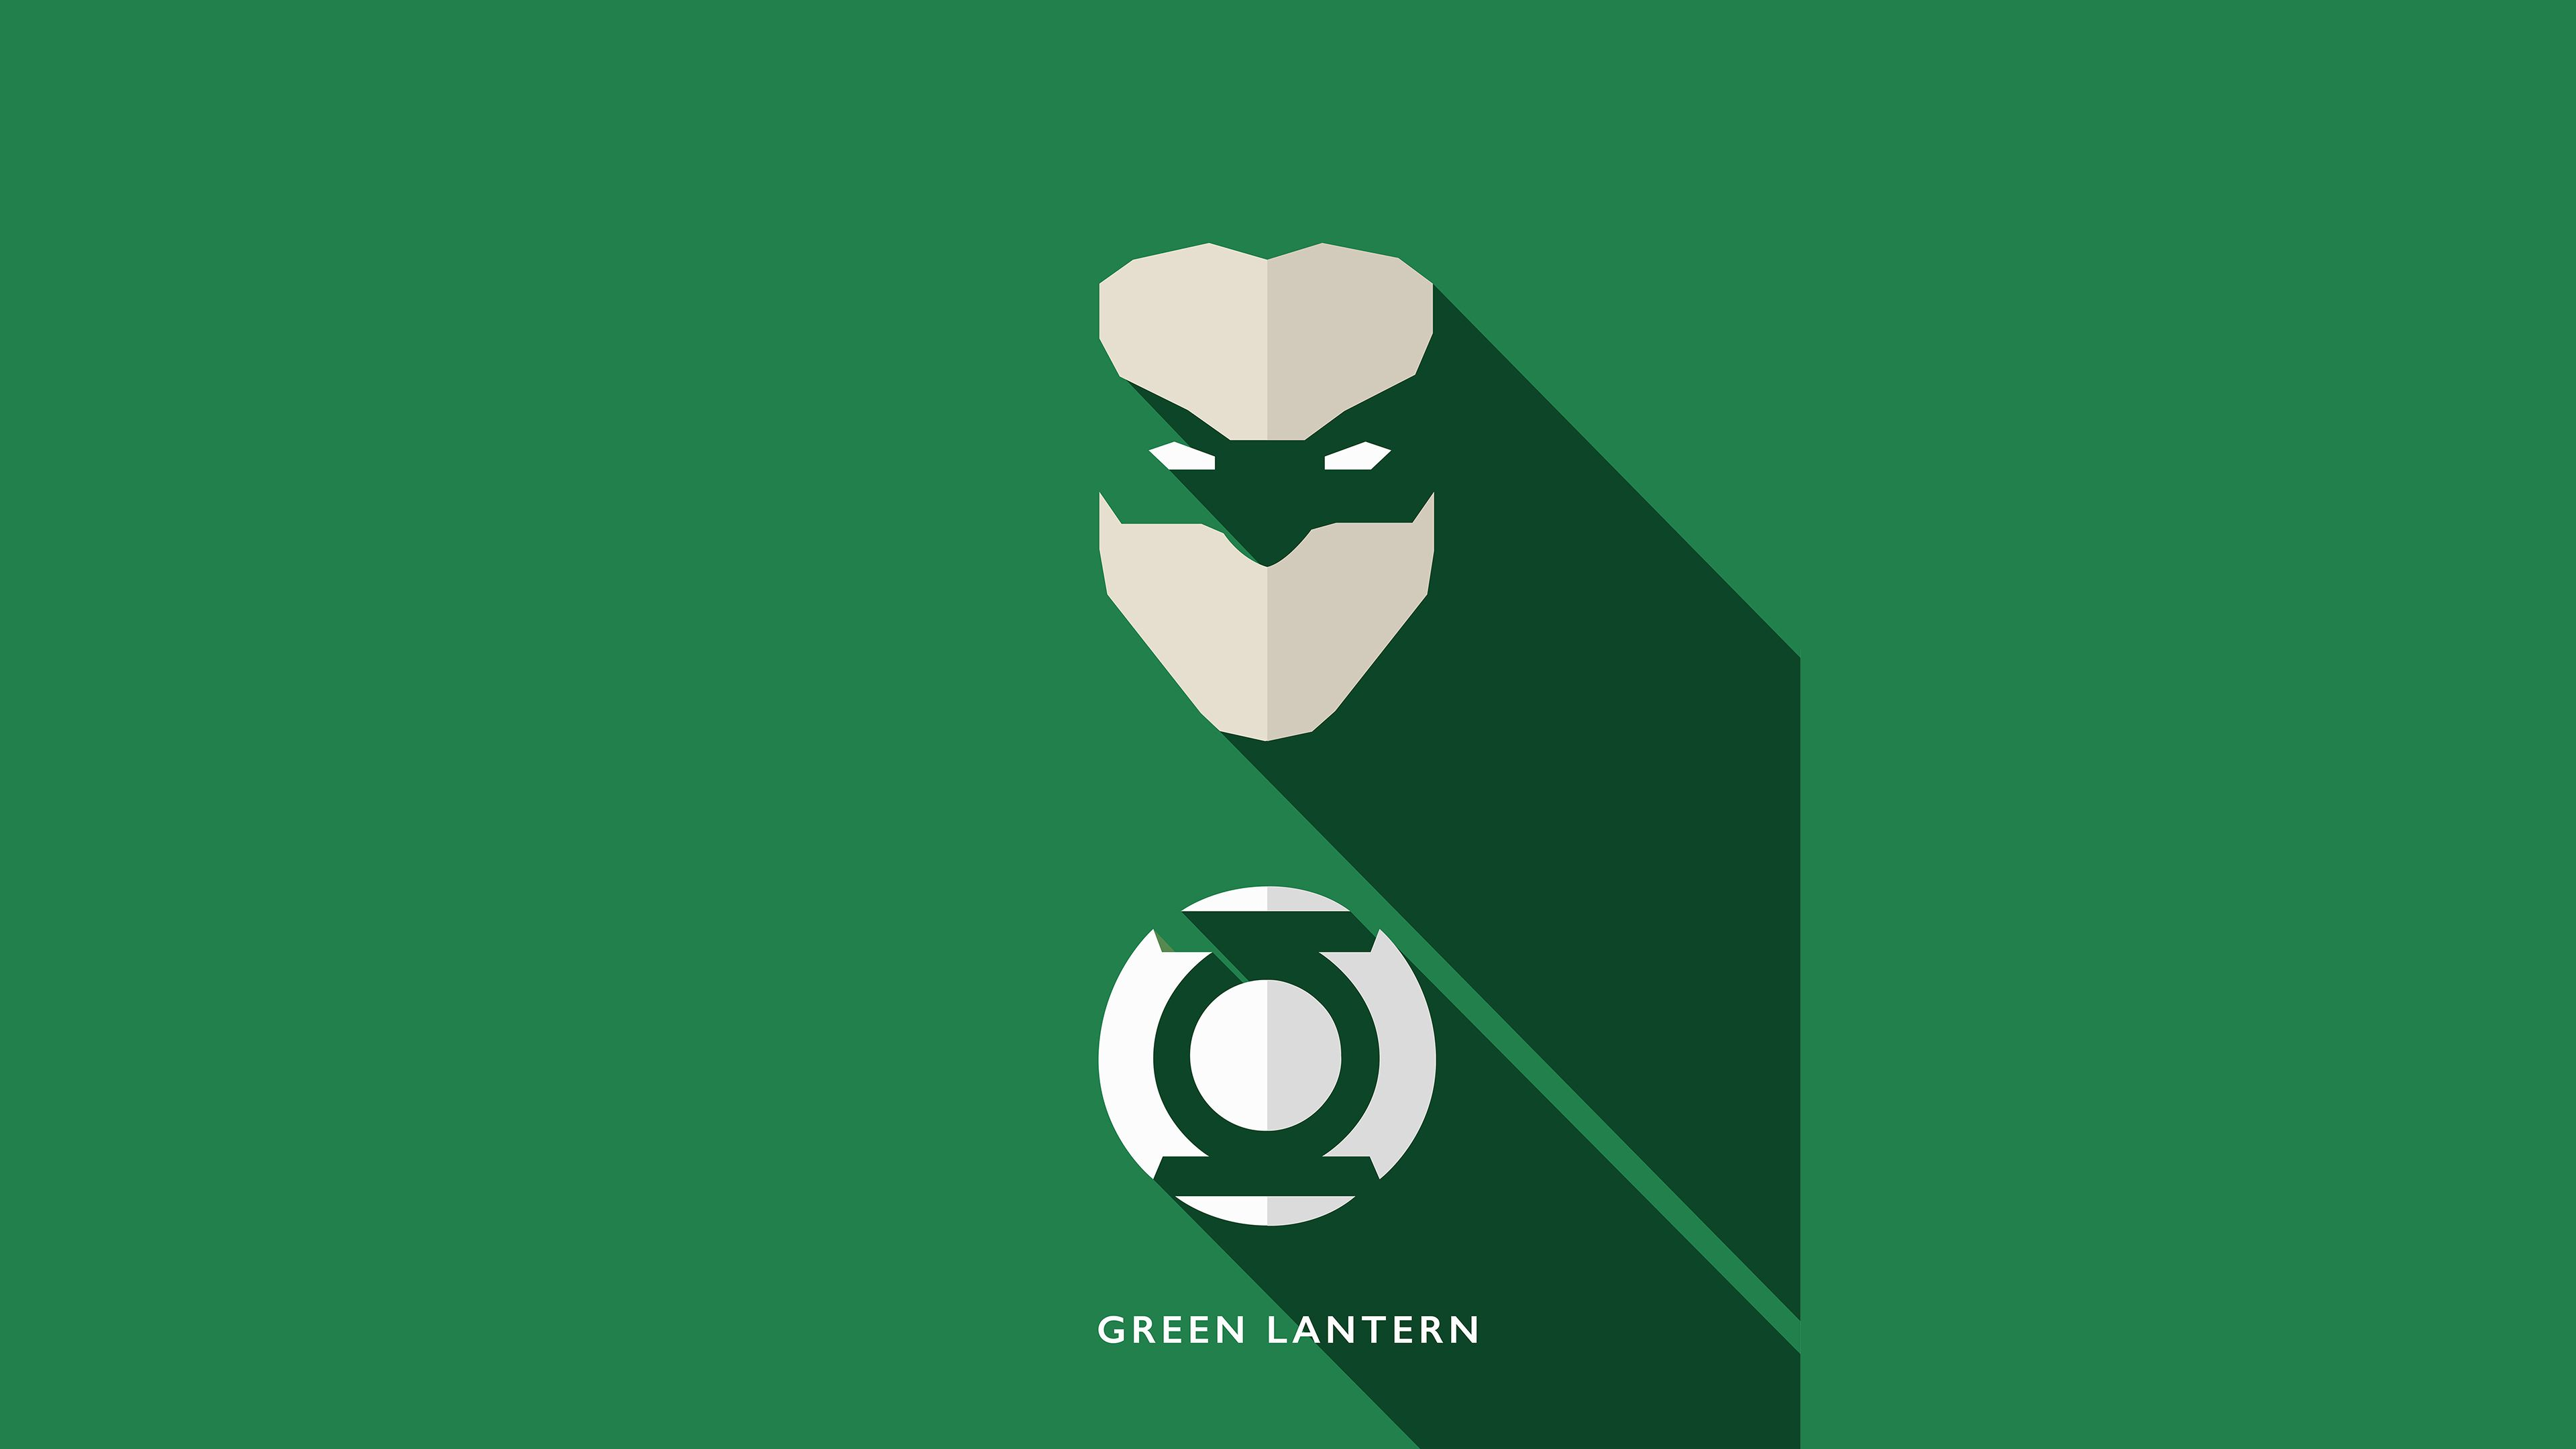 Green Lantern Minimalism 4k, HD Superheroes, 4k Wallpapers, Image, Backgrounds, Photos and Pictures